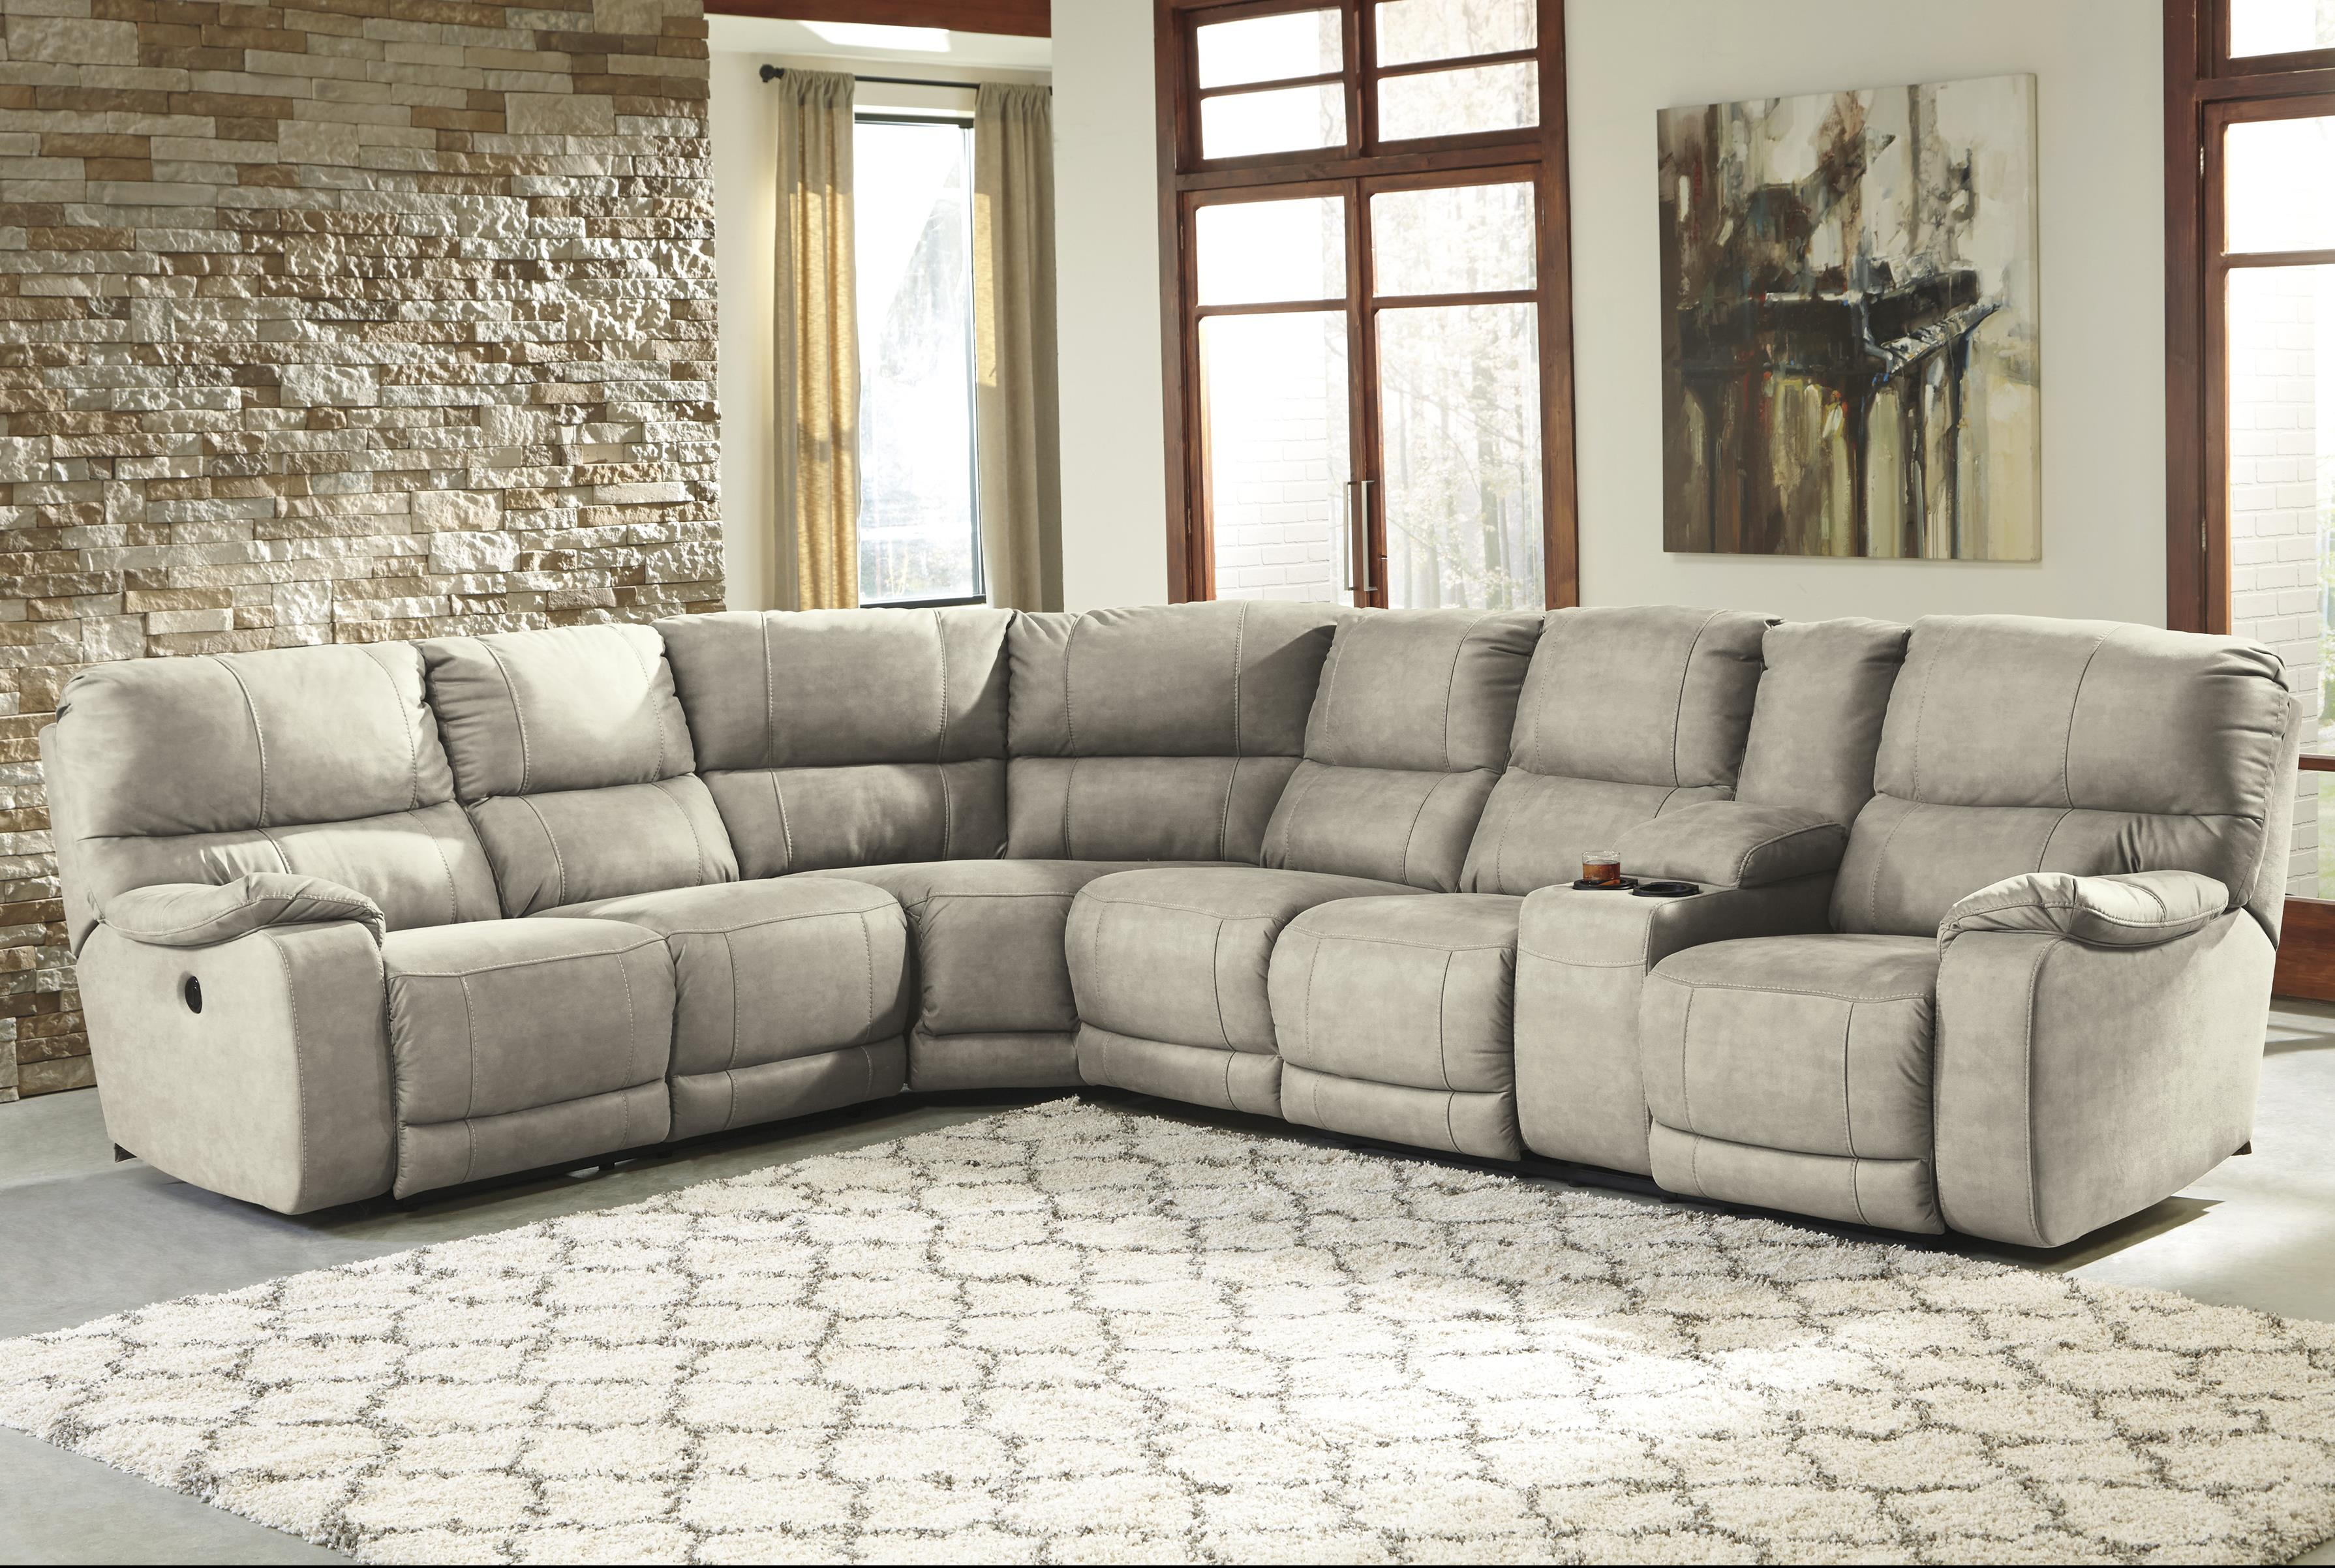 Benchcraft Bohannon Power Reclining Sectional with Console - Item Number: 5740163+77+46+90